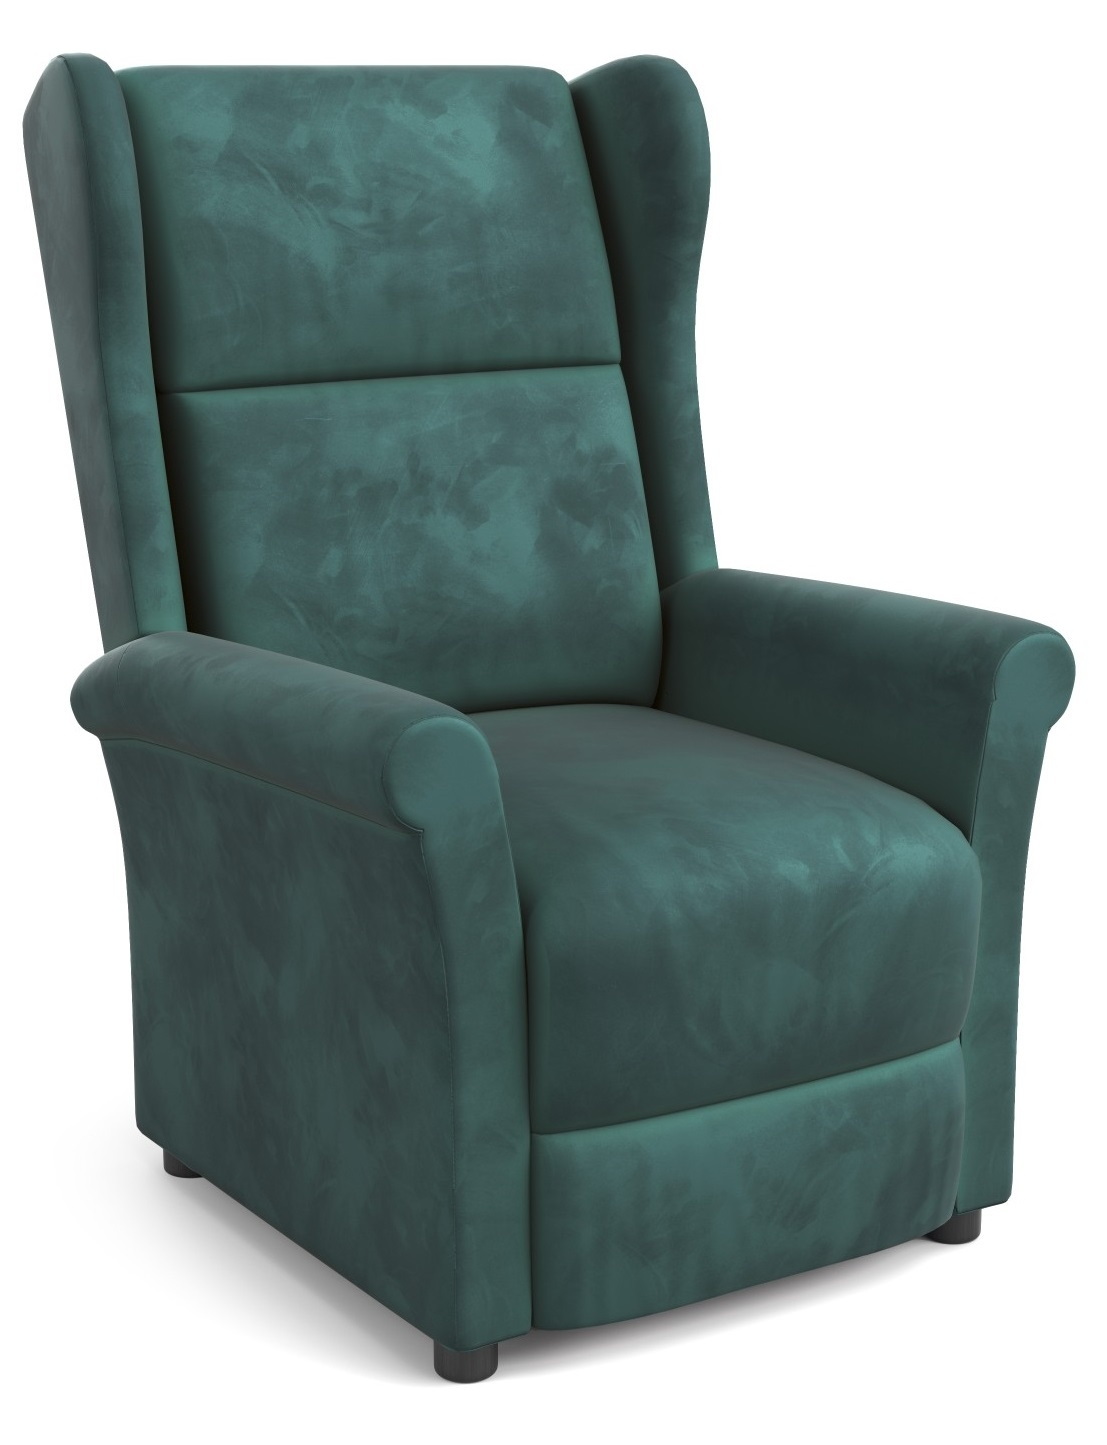 Fauteuil Agustin in groen | Home Style